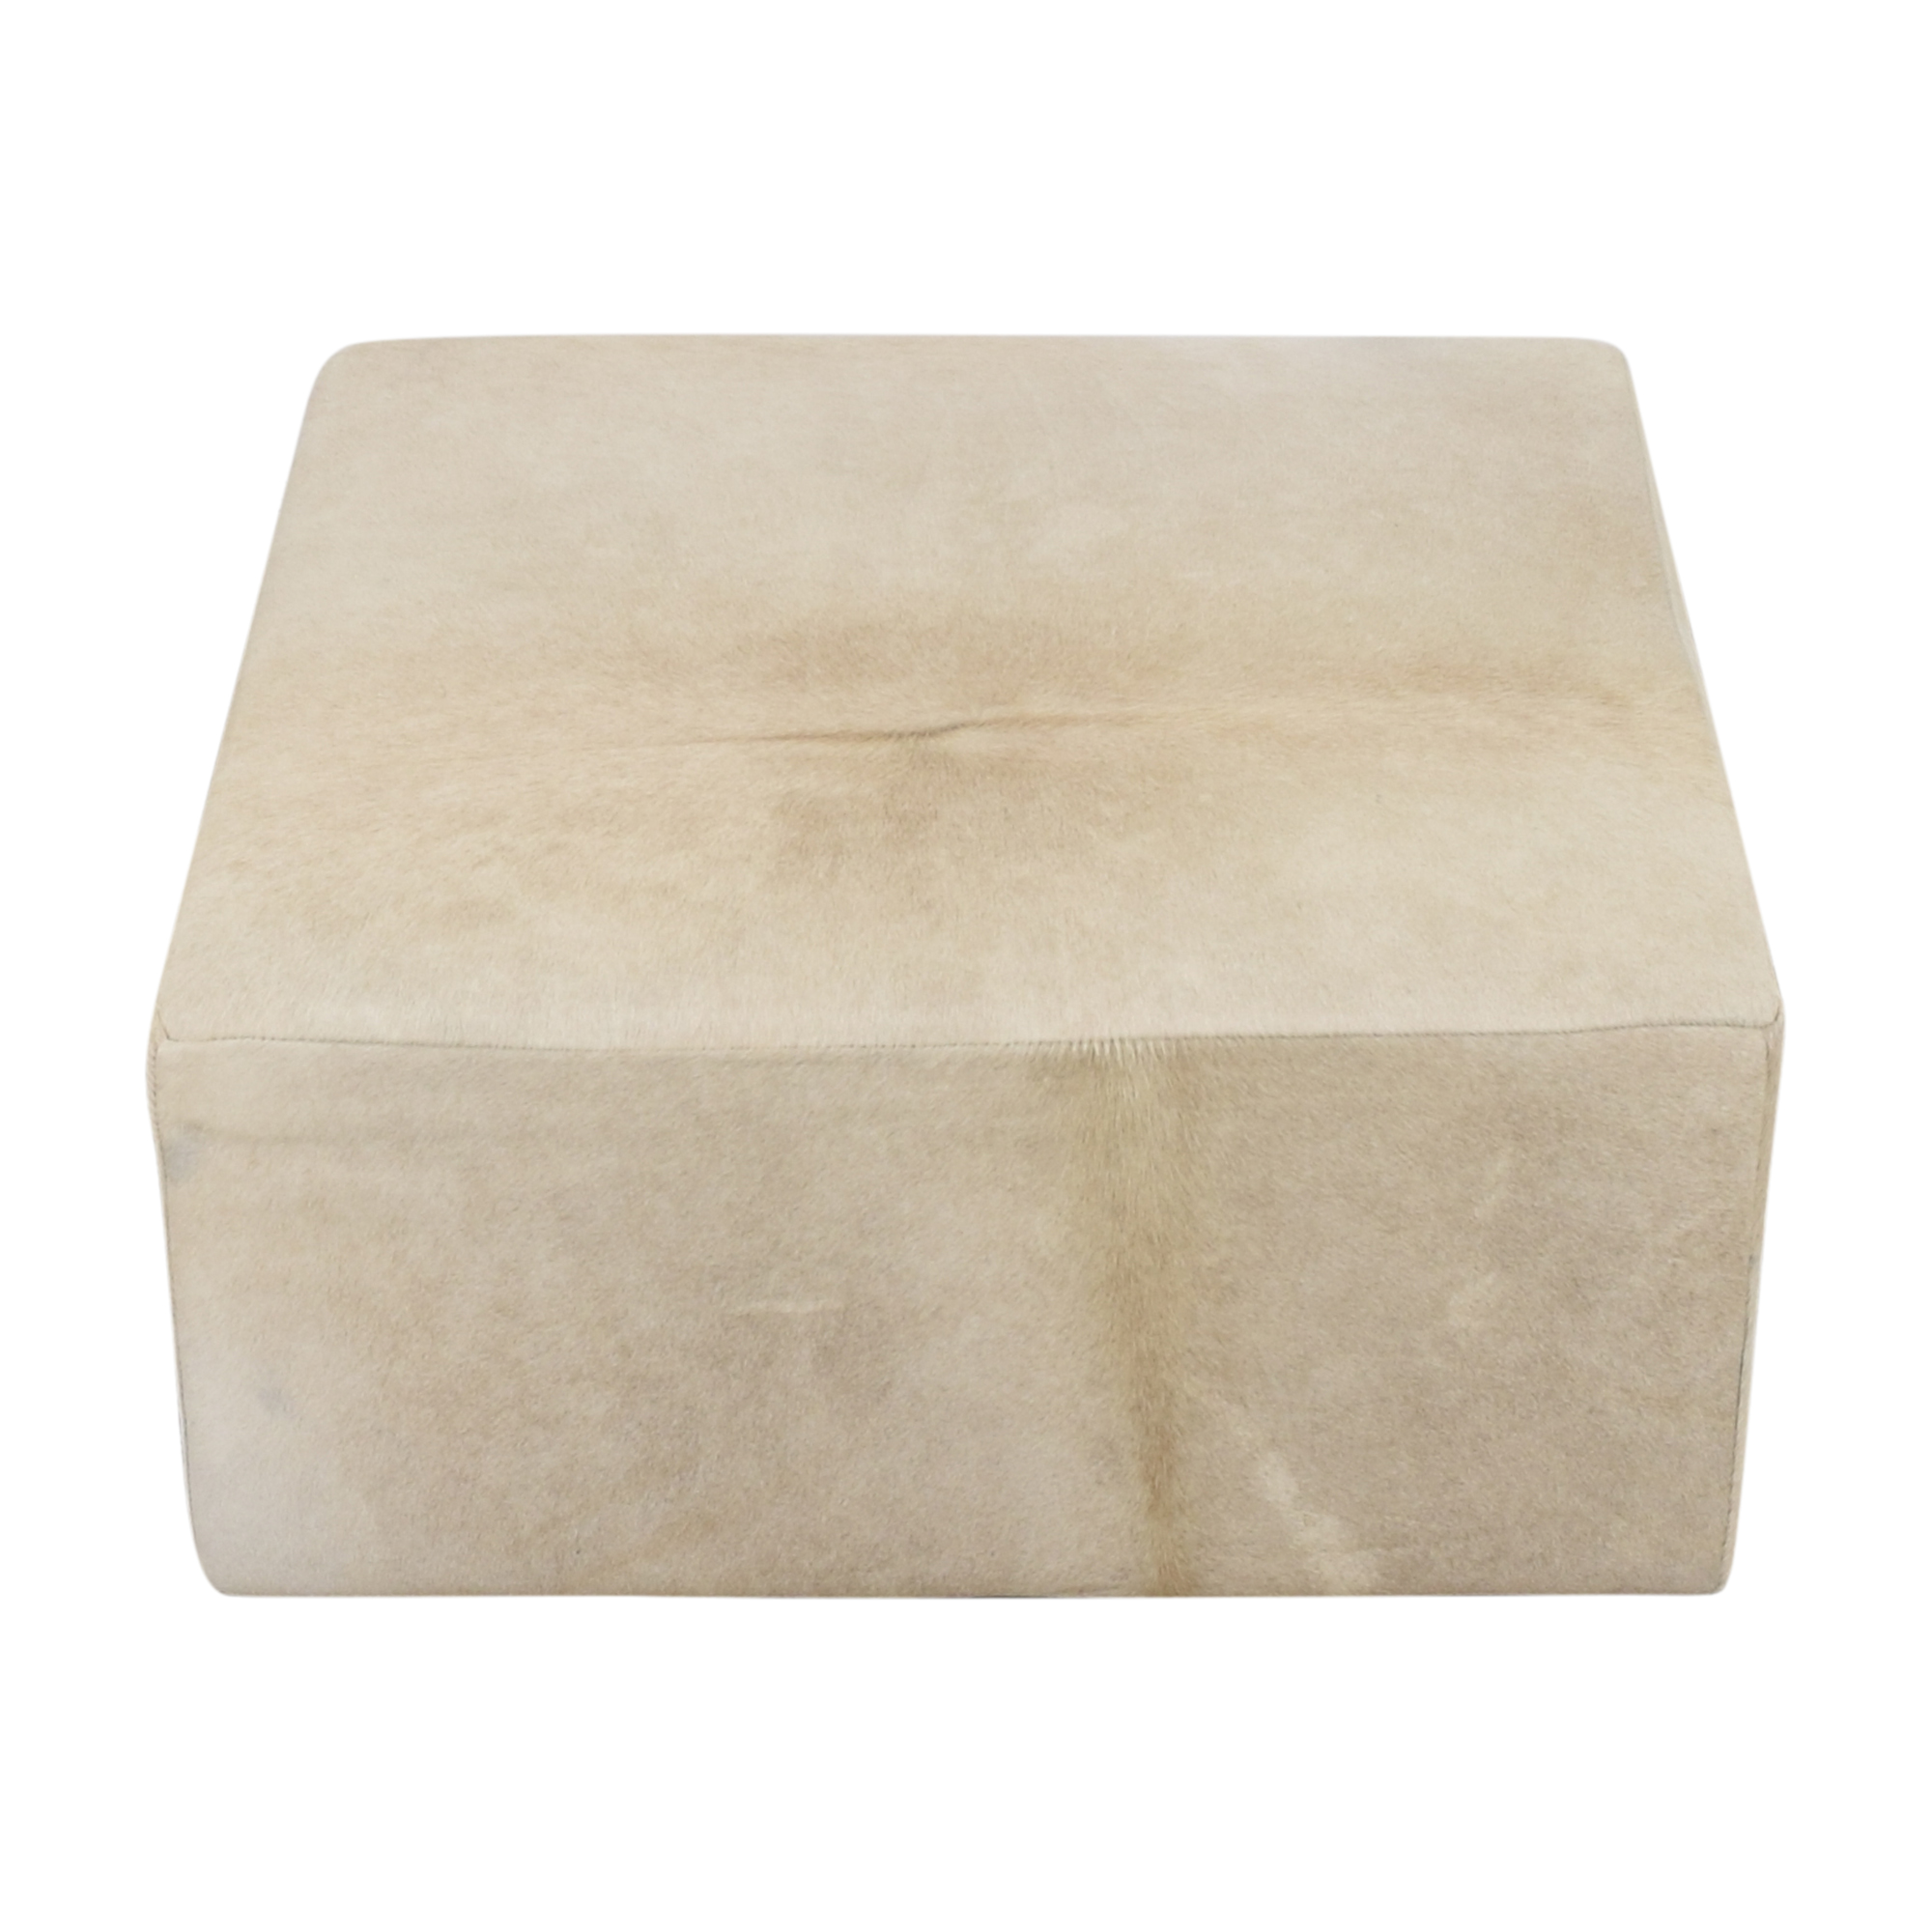 Restoration Hardware Restoration Hardware Cooper Hair-On-Hide Square Ottoman nyc